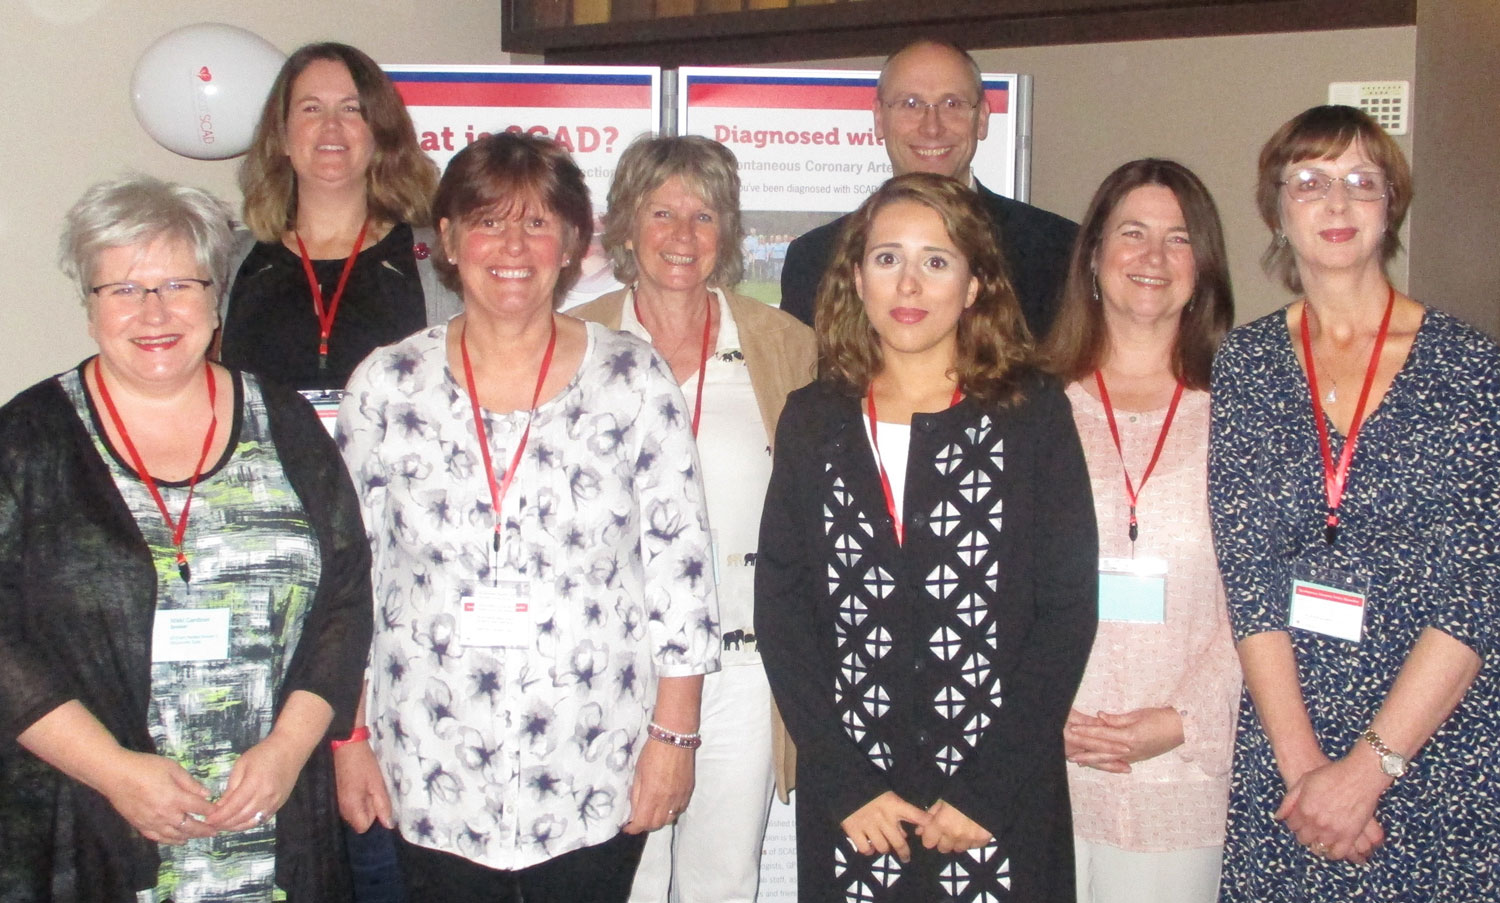 Speakers (l to r): Nikki Gardiner, Harriet Mulvaney, Gaye Barber, Gill Blaney, Dr Abi Al-Hussaini, Dr David Adlam, Catherine Mulcaster, Catherine Beck